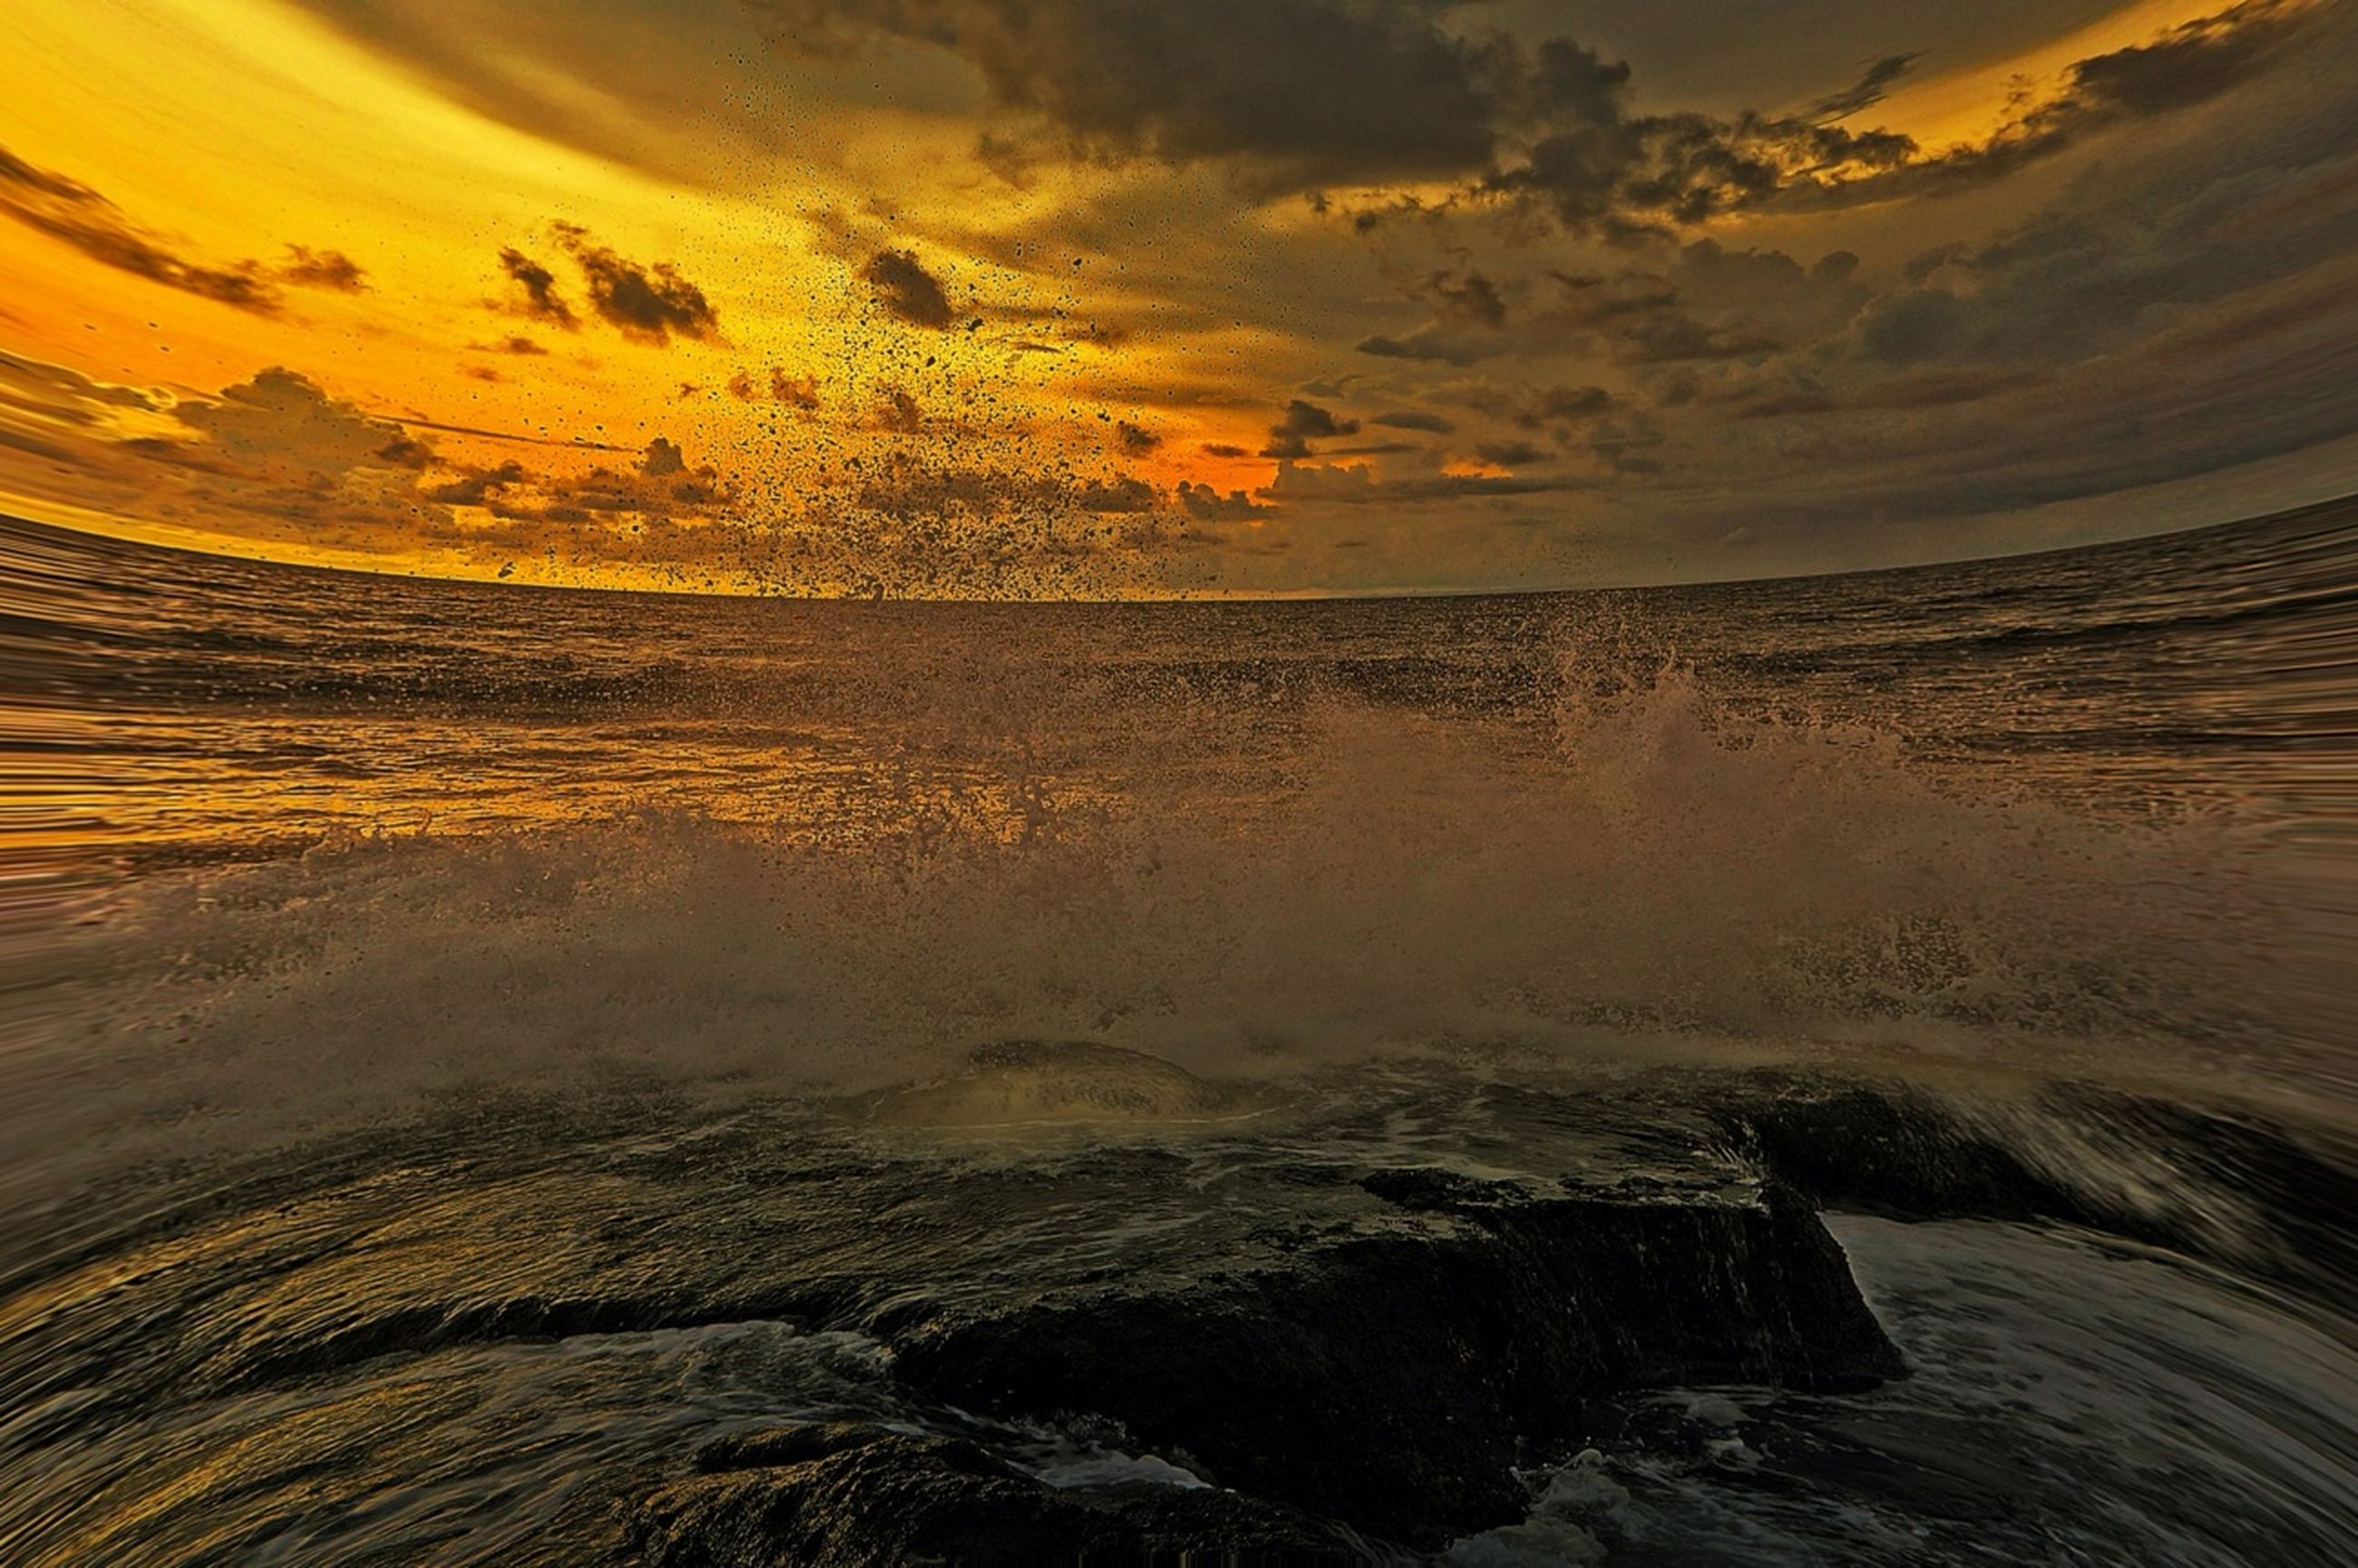 water, sunset, sea, scenics, beauty in nature, tranquil scene, tranquility, sky, nature, horizon over water, idyllic, wave, waterfront, reflection, beach, cloud - sky, rippled, shore, orange color, seascape